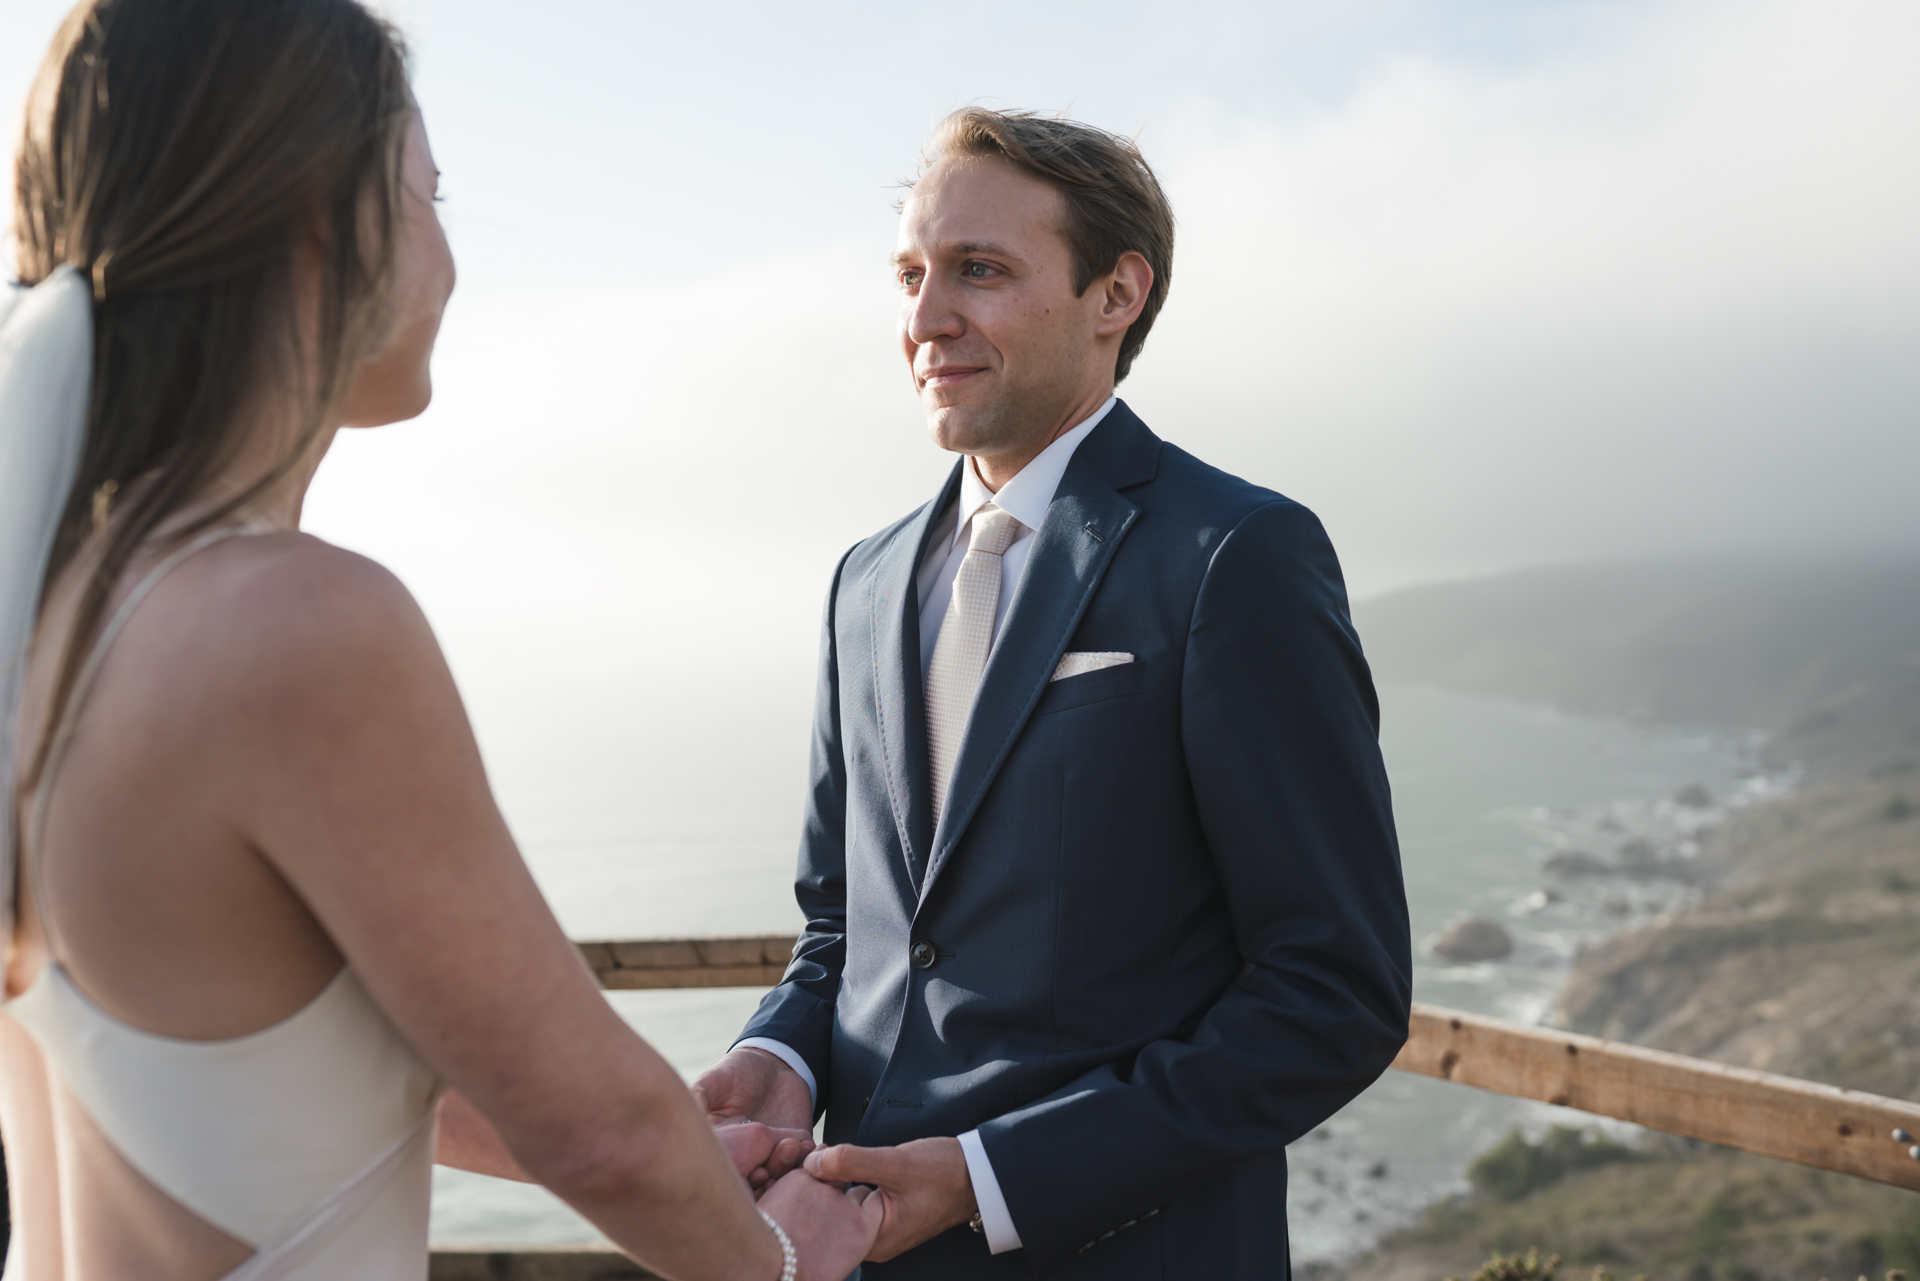 Muir Beach SF Overlook Wedding Ceremony Picture | A private elopement in the absence of an audience